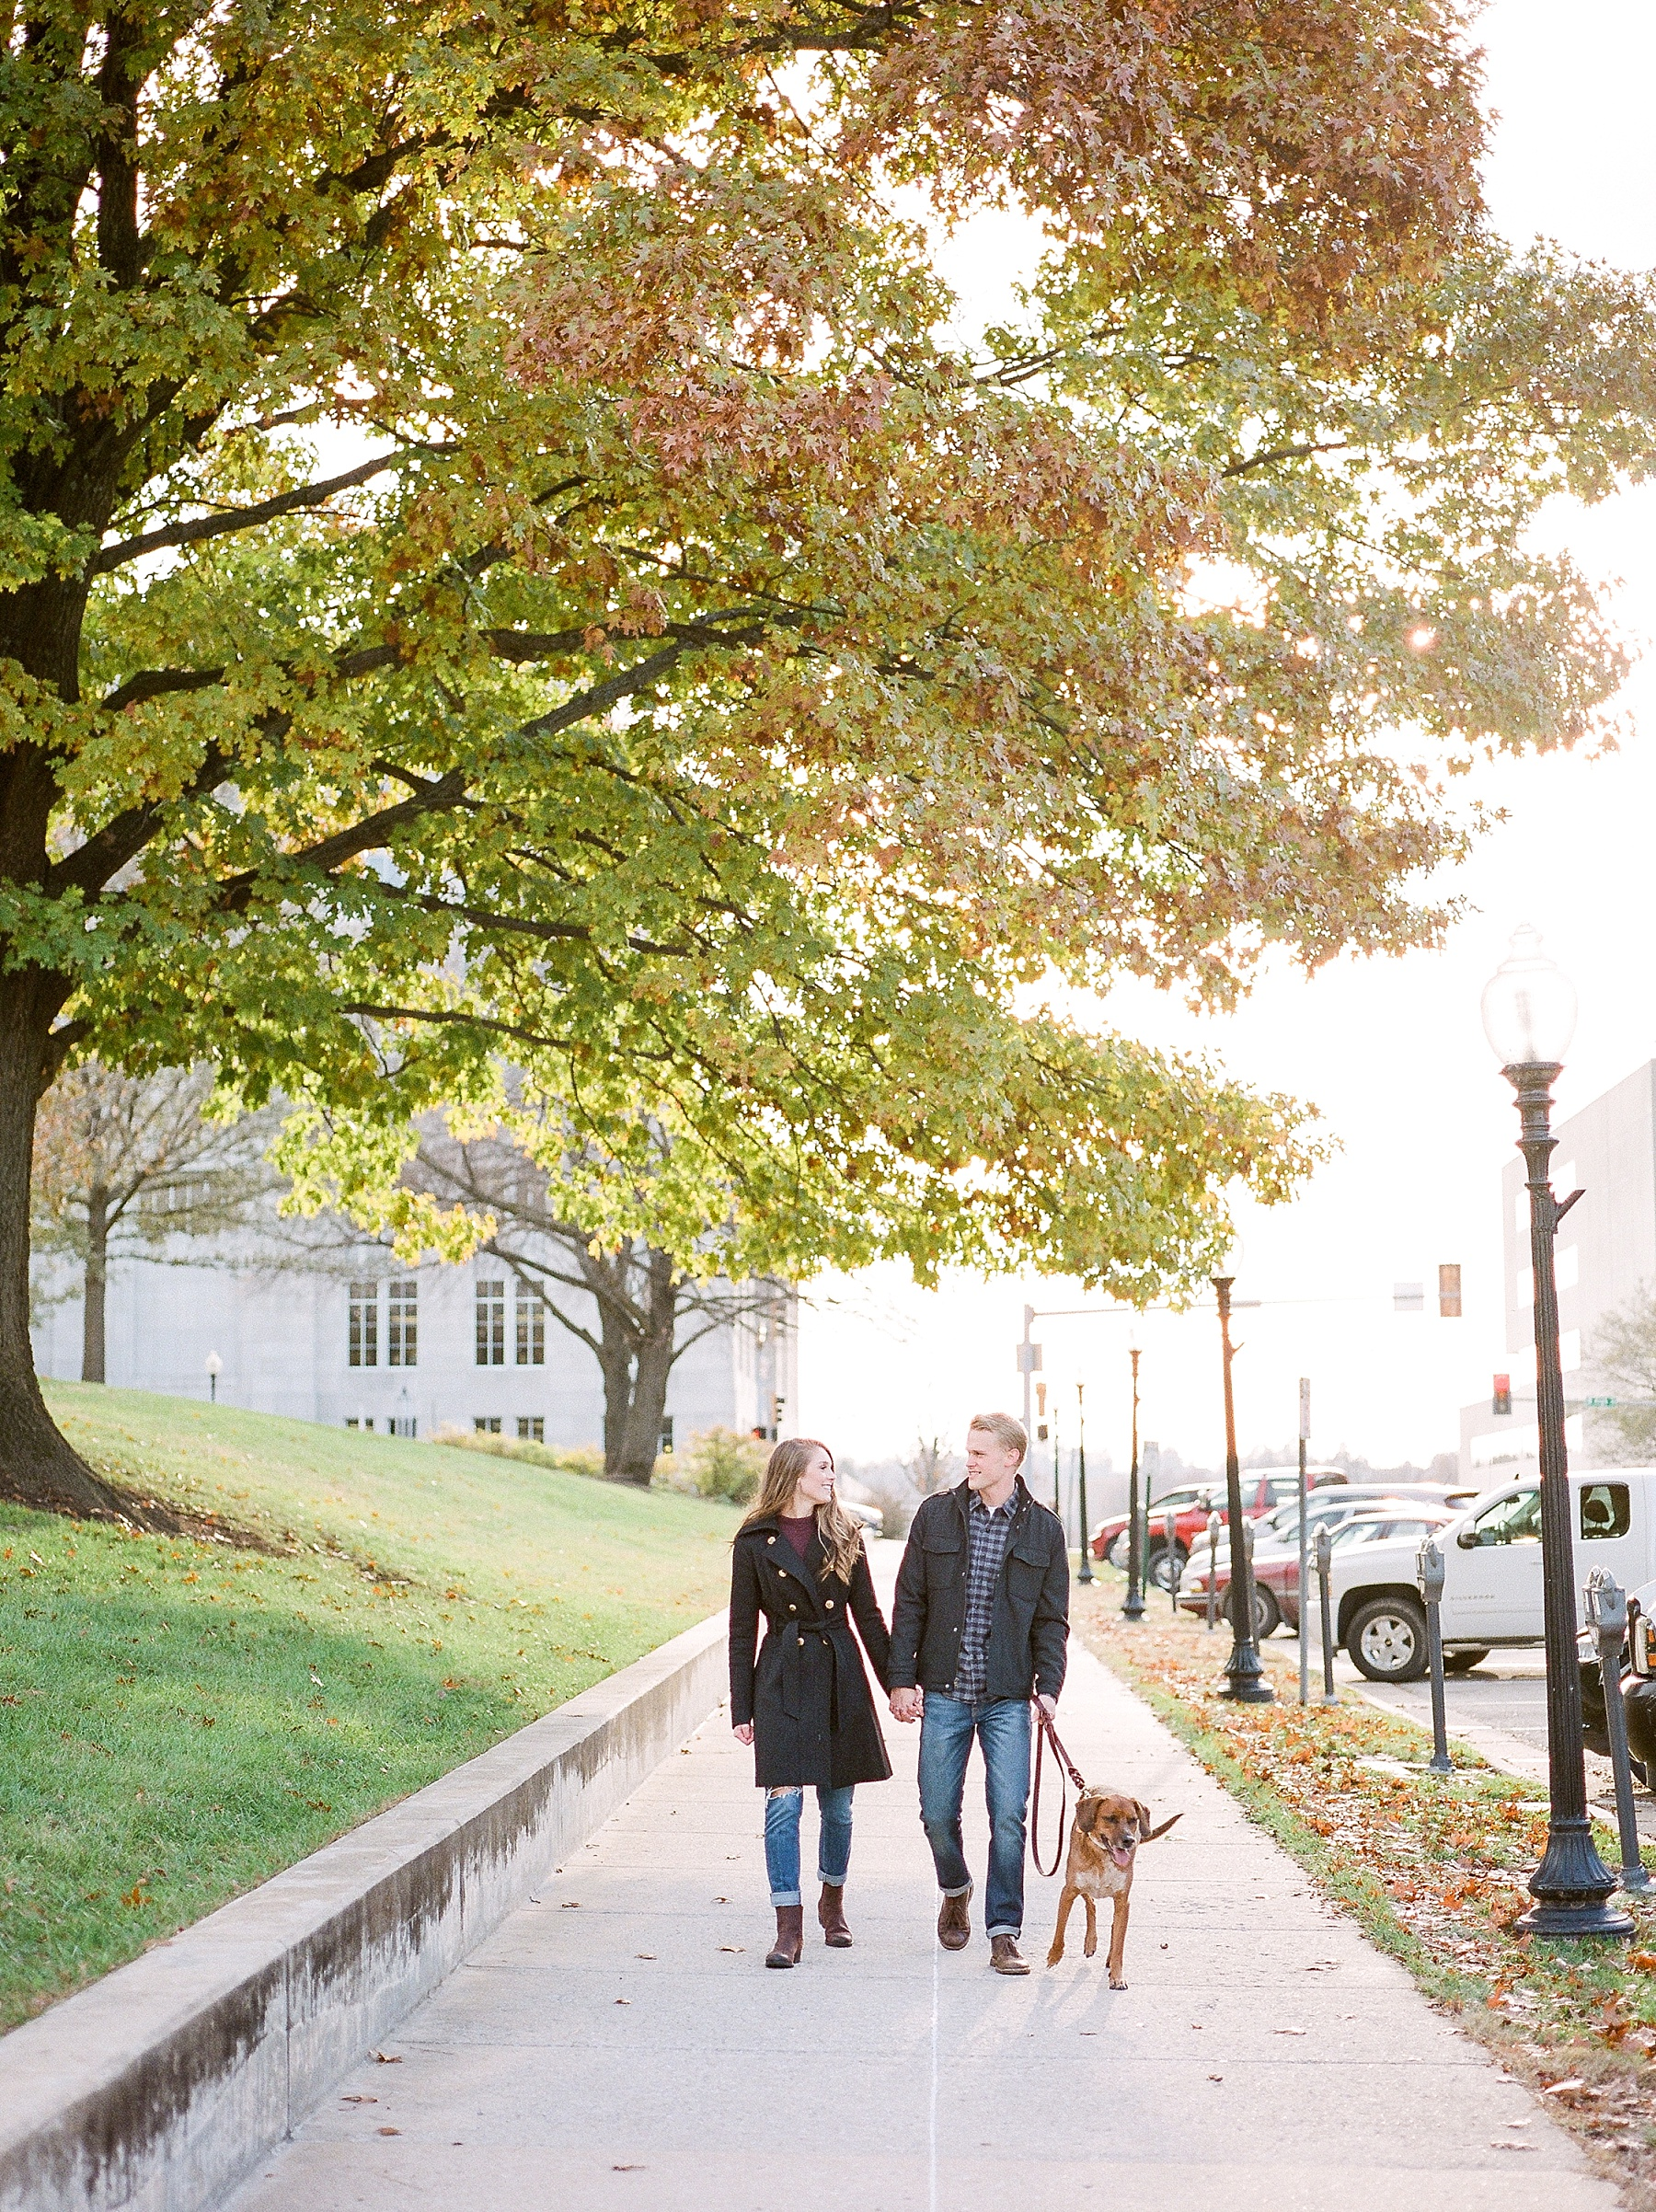 Downtown Jefferson City Engagement Session in Winter at Old Shoe Factory by Kelsi Kliethermes Photography Kansas City Missouri Wedding Photographer_0012.jpg